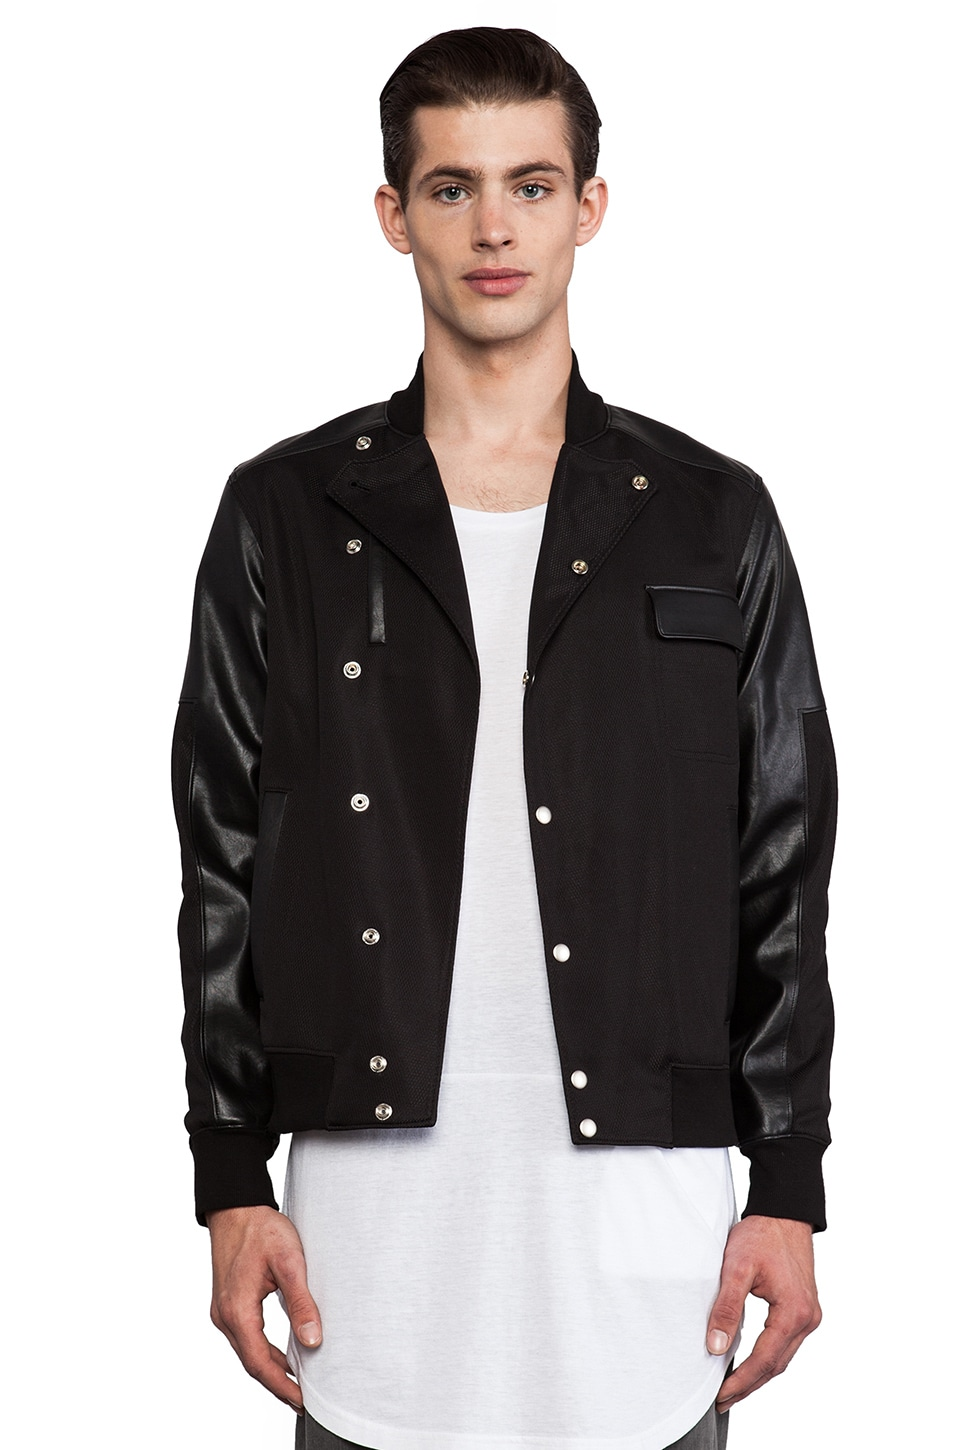 Munsoo Kwon Asymmetric Coolever Varsity Jacket in Black